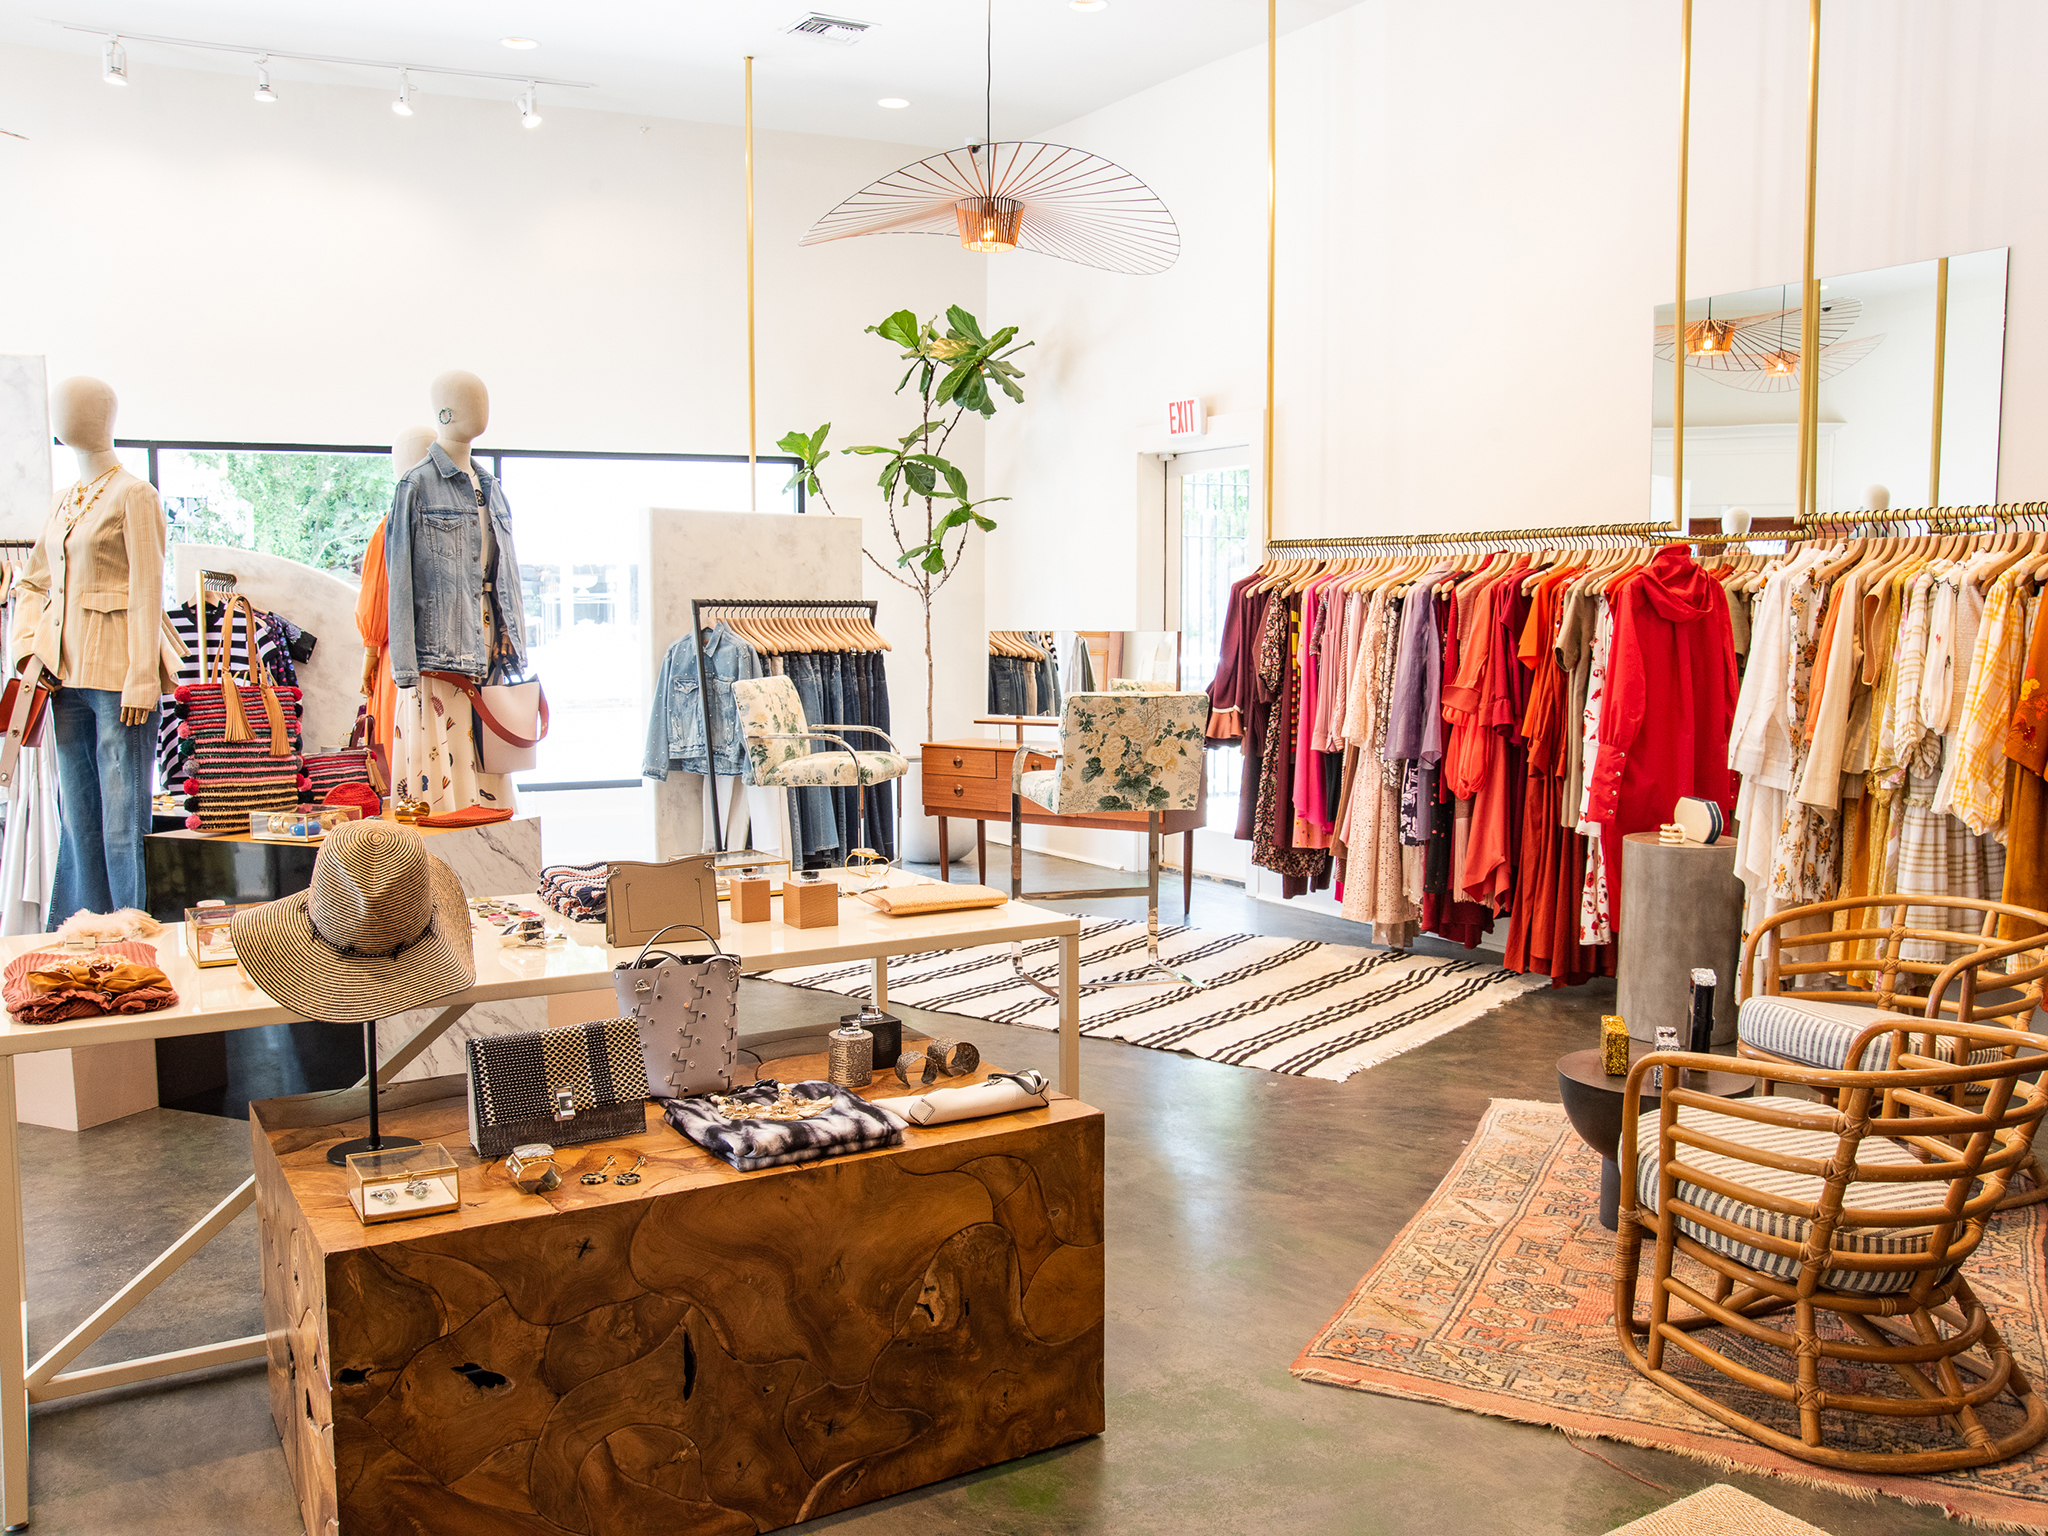 Where to go shopping in New Orleans